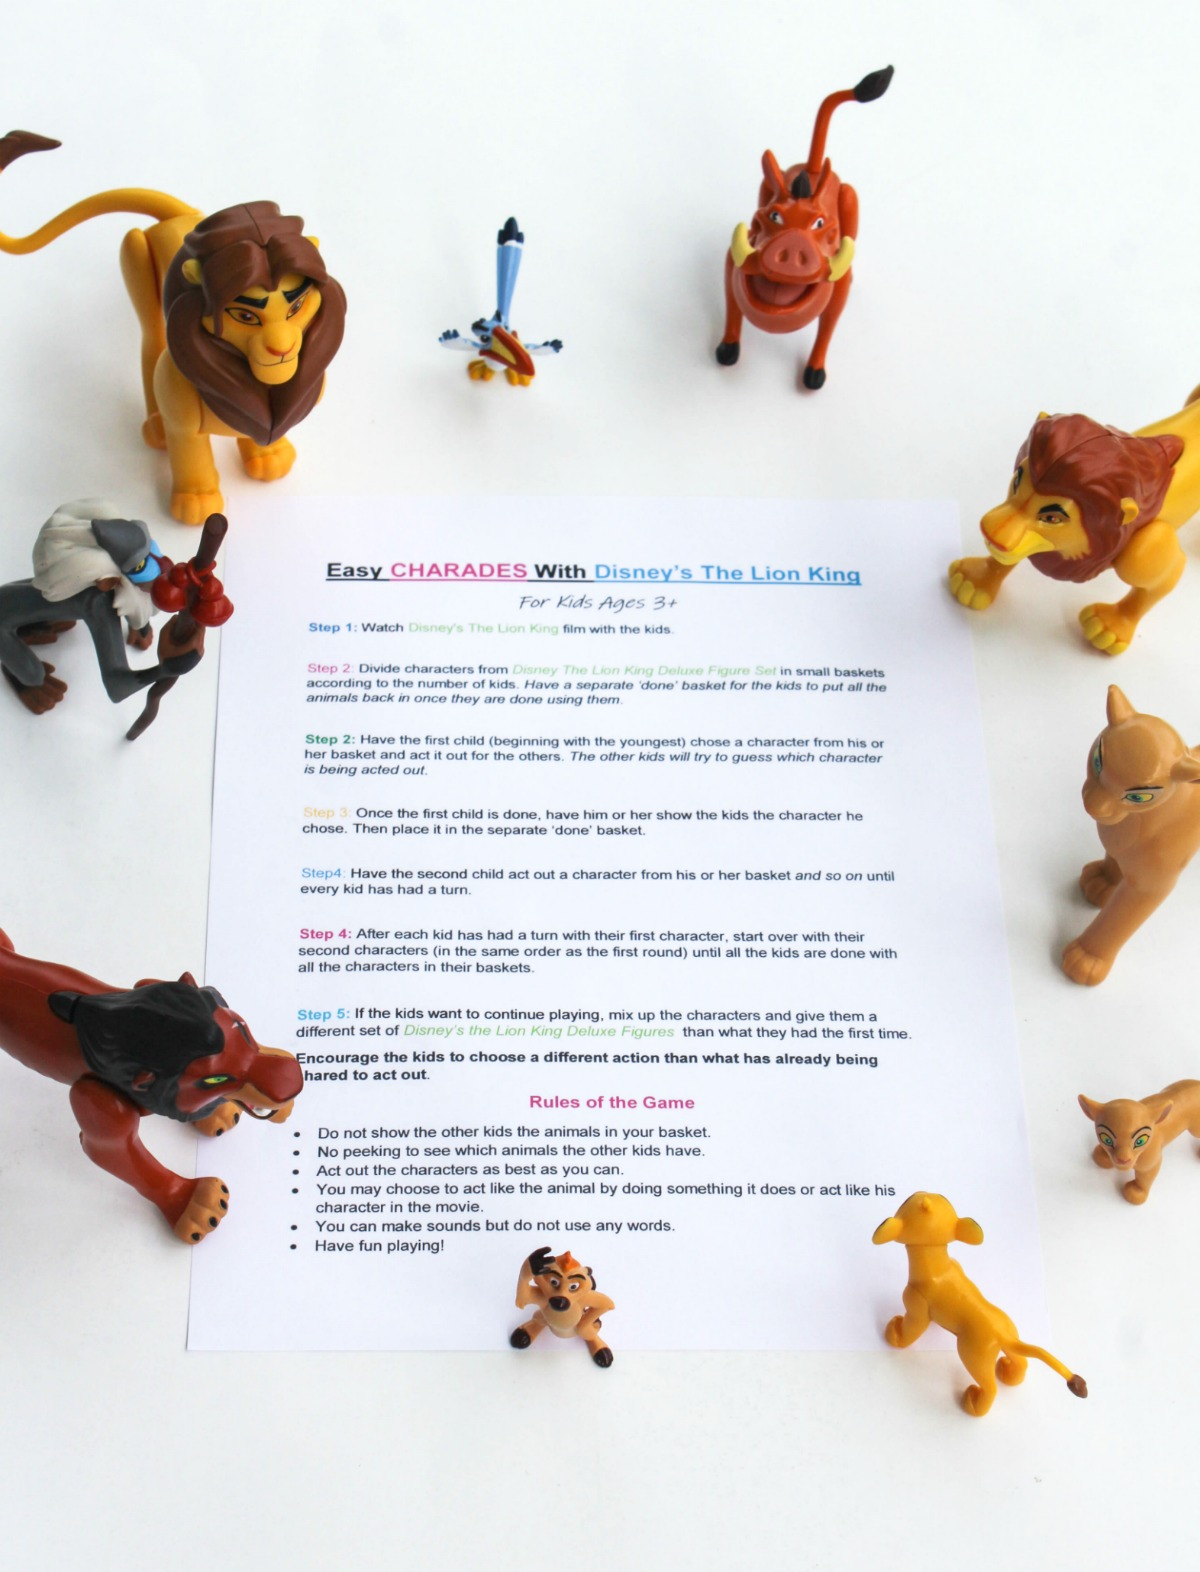 Disney's The Lion King - Game of Charades for Kids – At Home